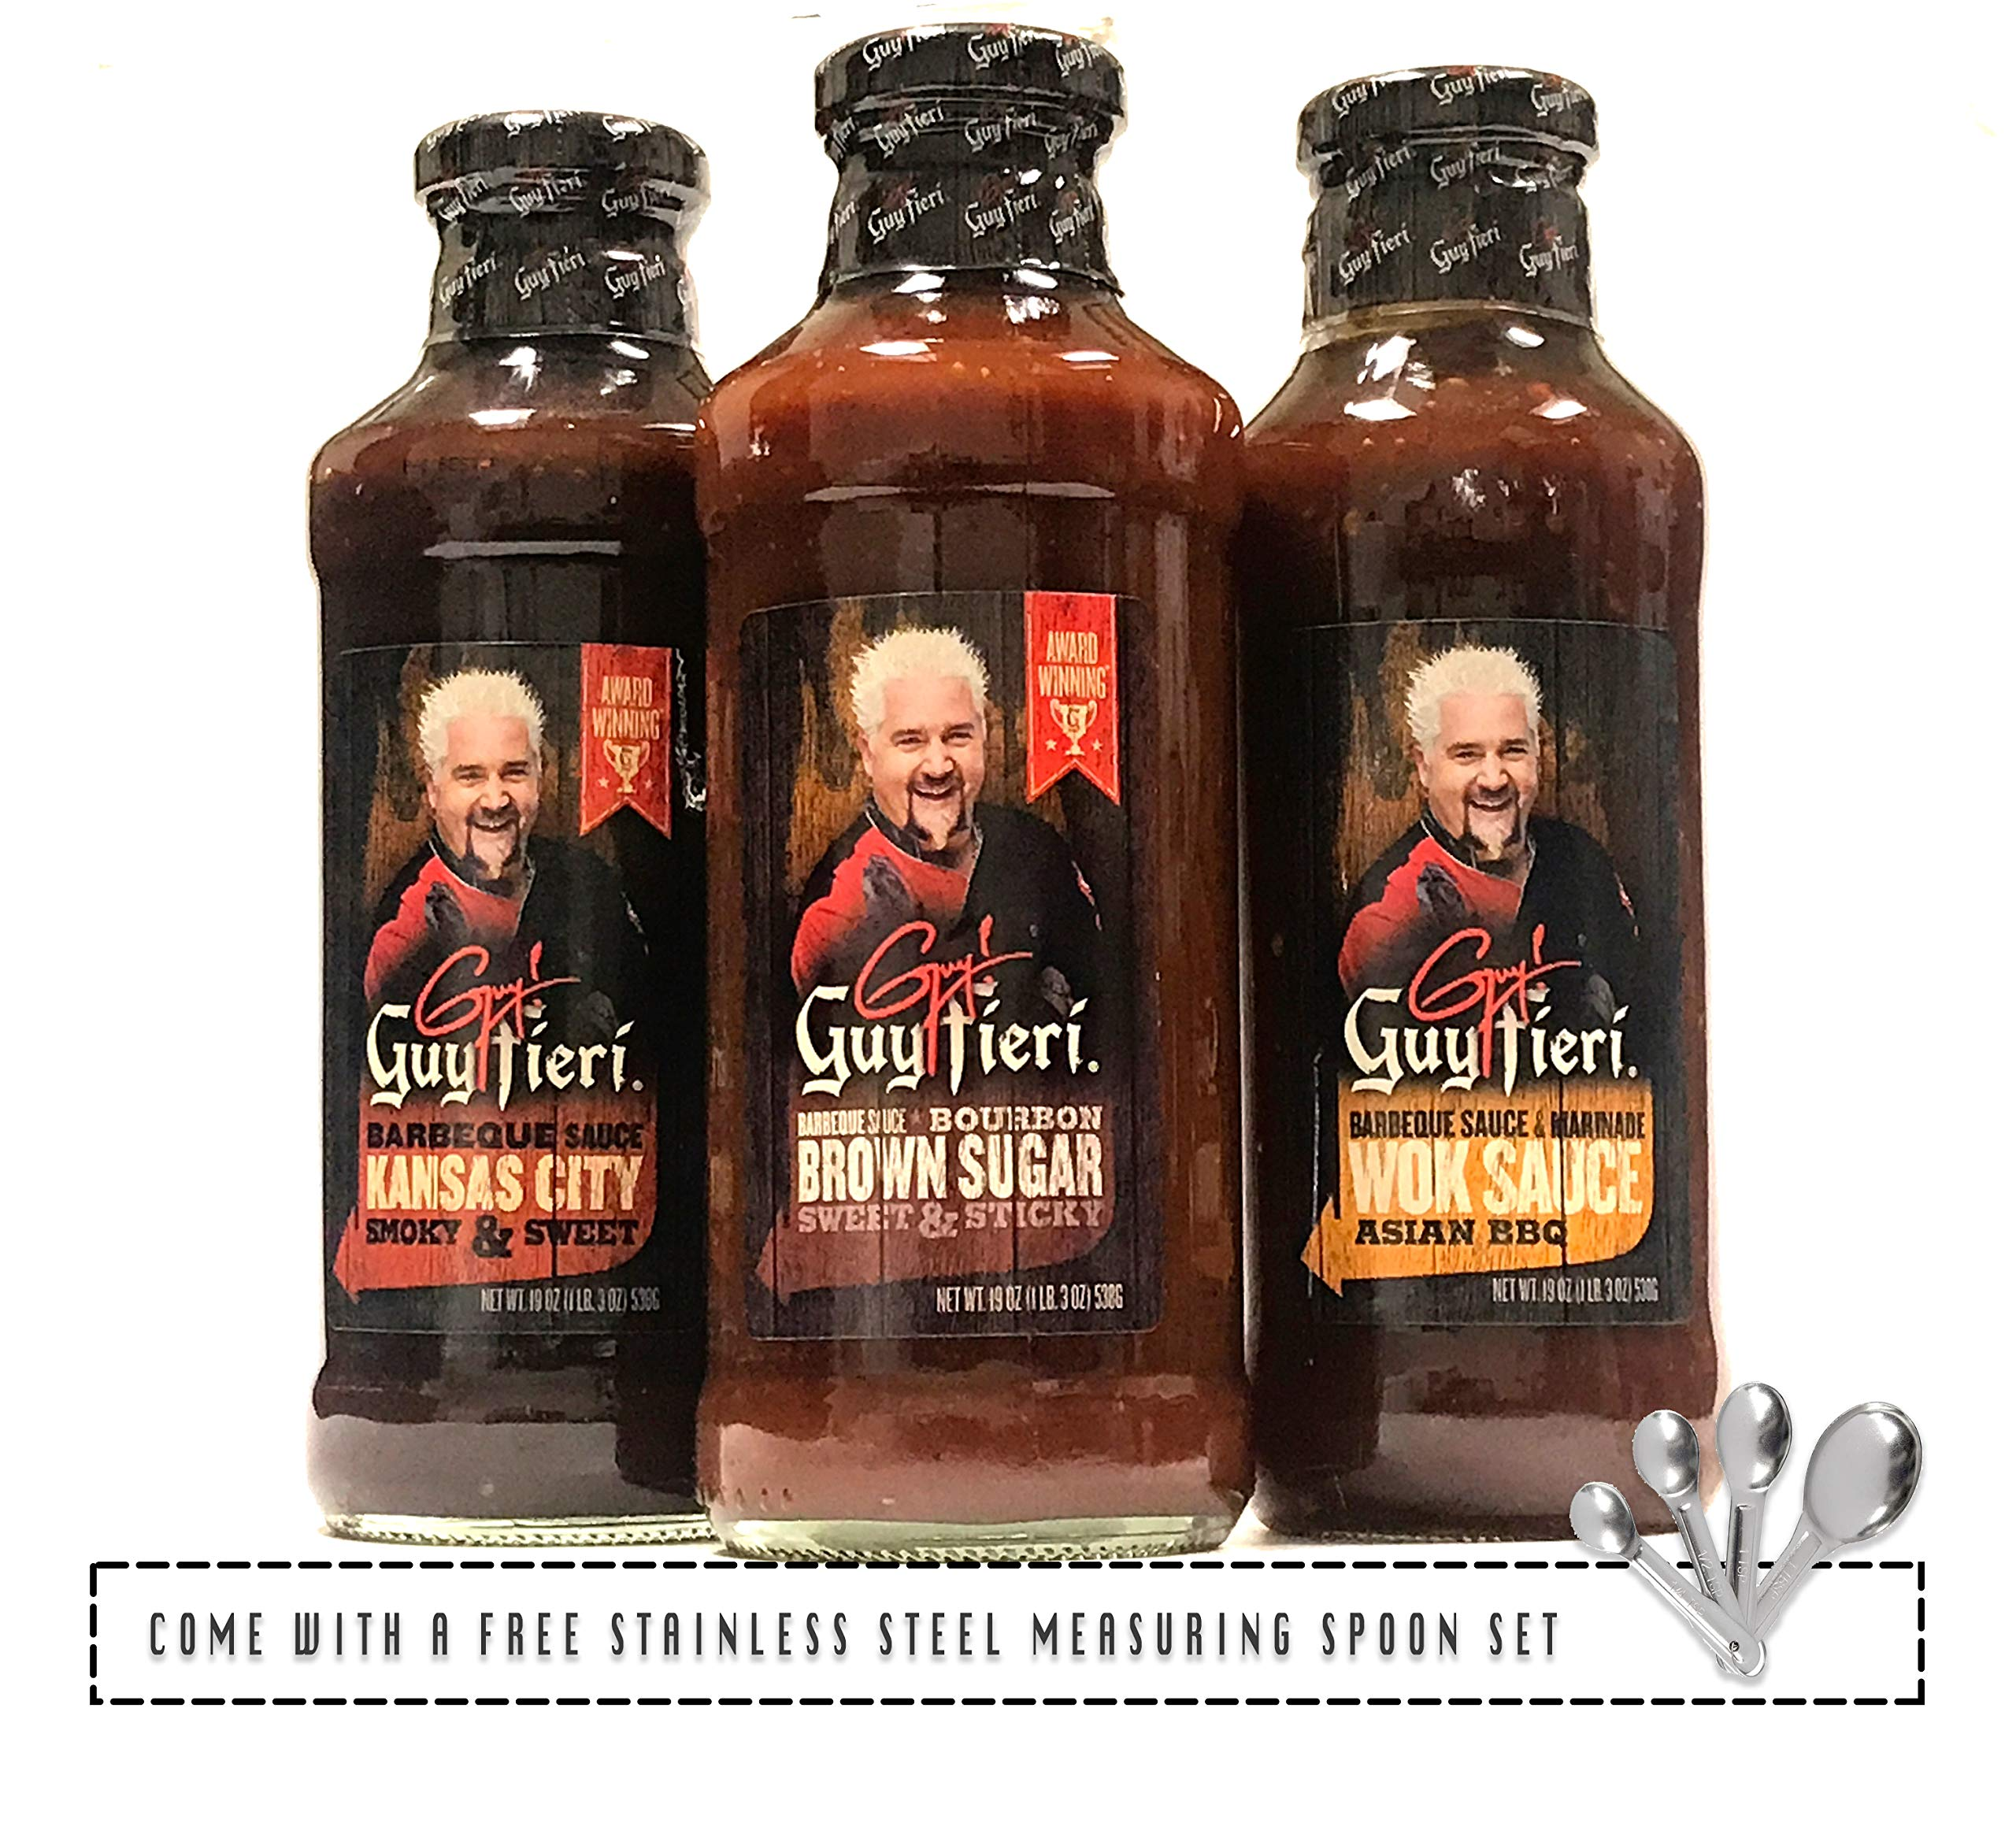 Guy Fieri Grill Master BBQ Sauce Variety Pack (Brown Sugar, Kansas City, Wok Sauce), Come w/ a Free Stainless Measuring Spoon | Pack of 3